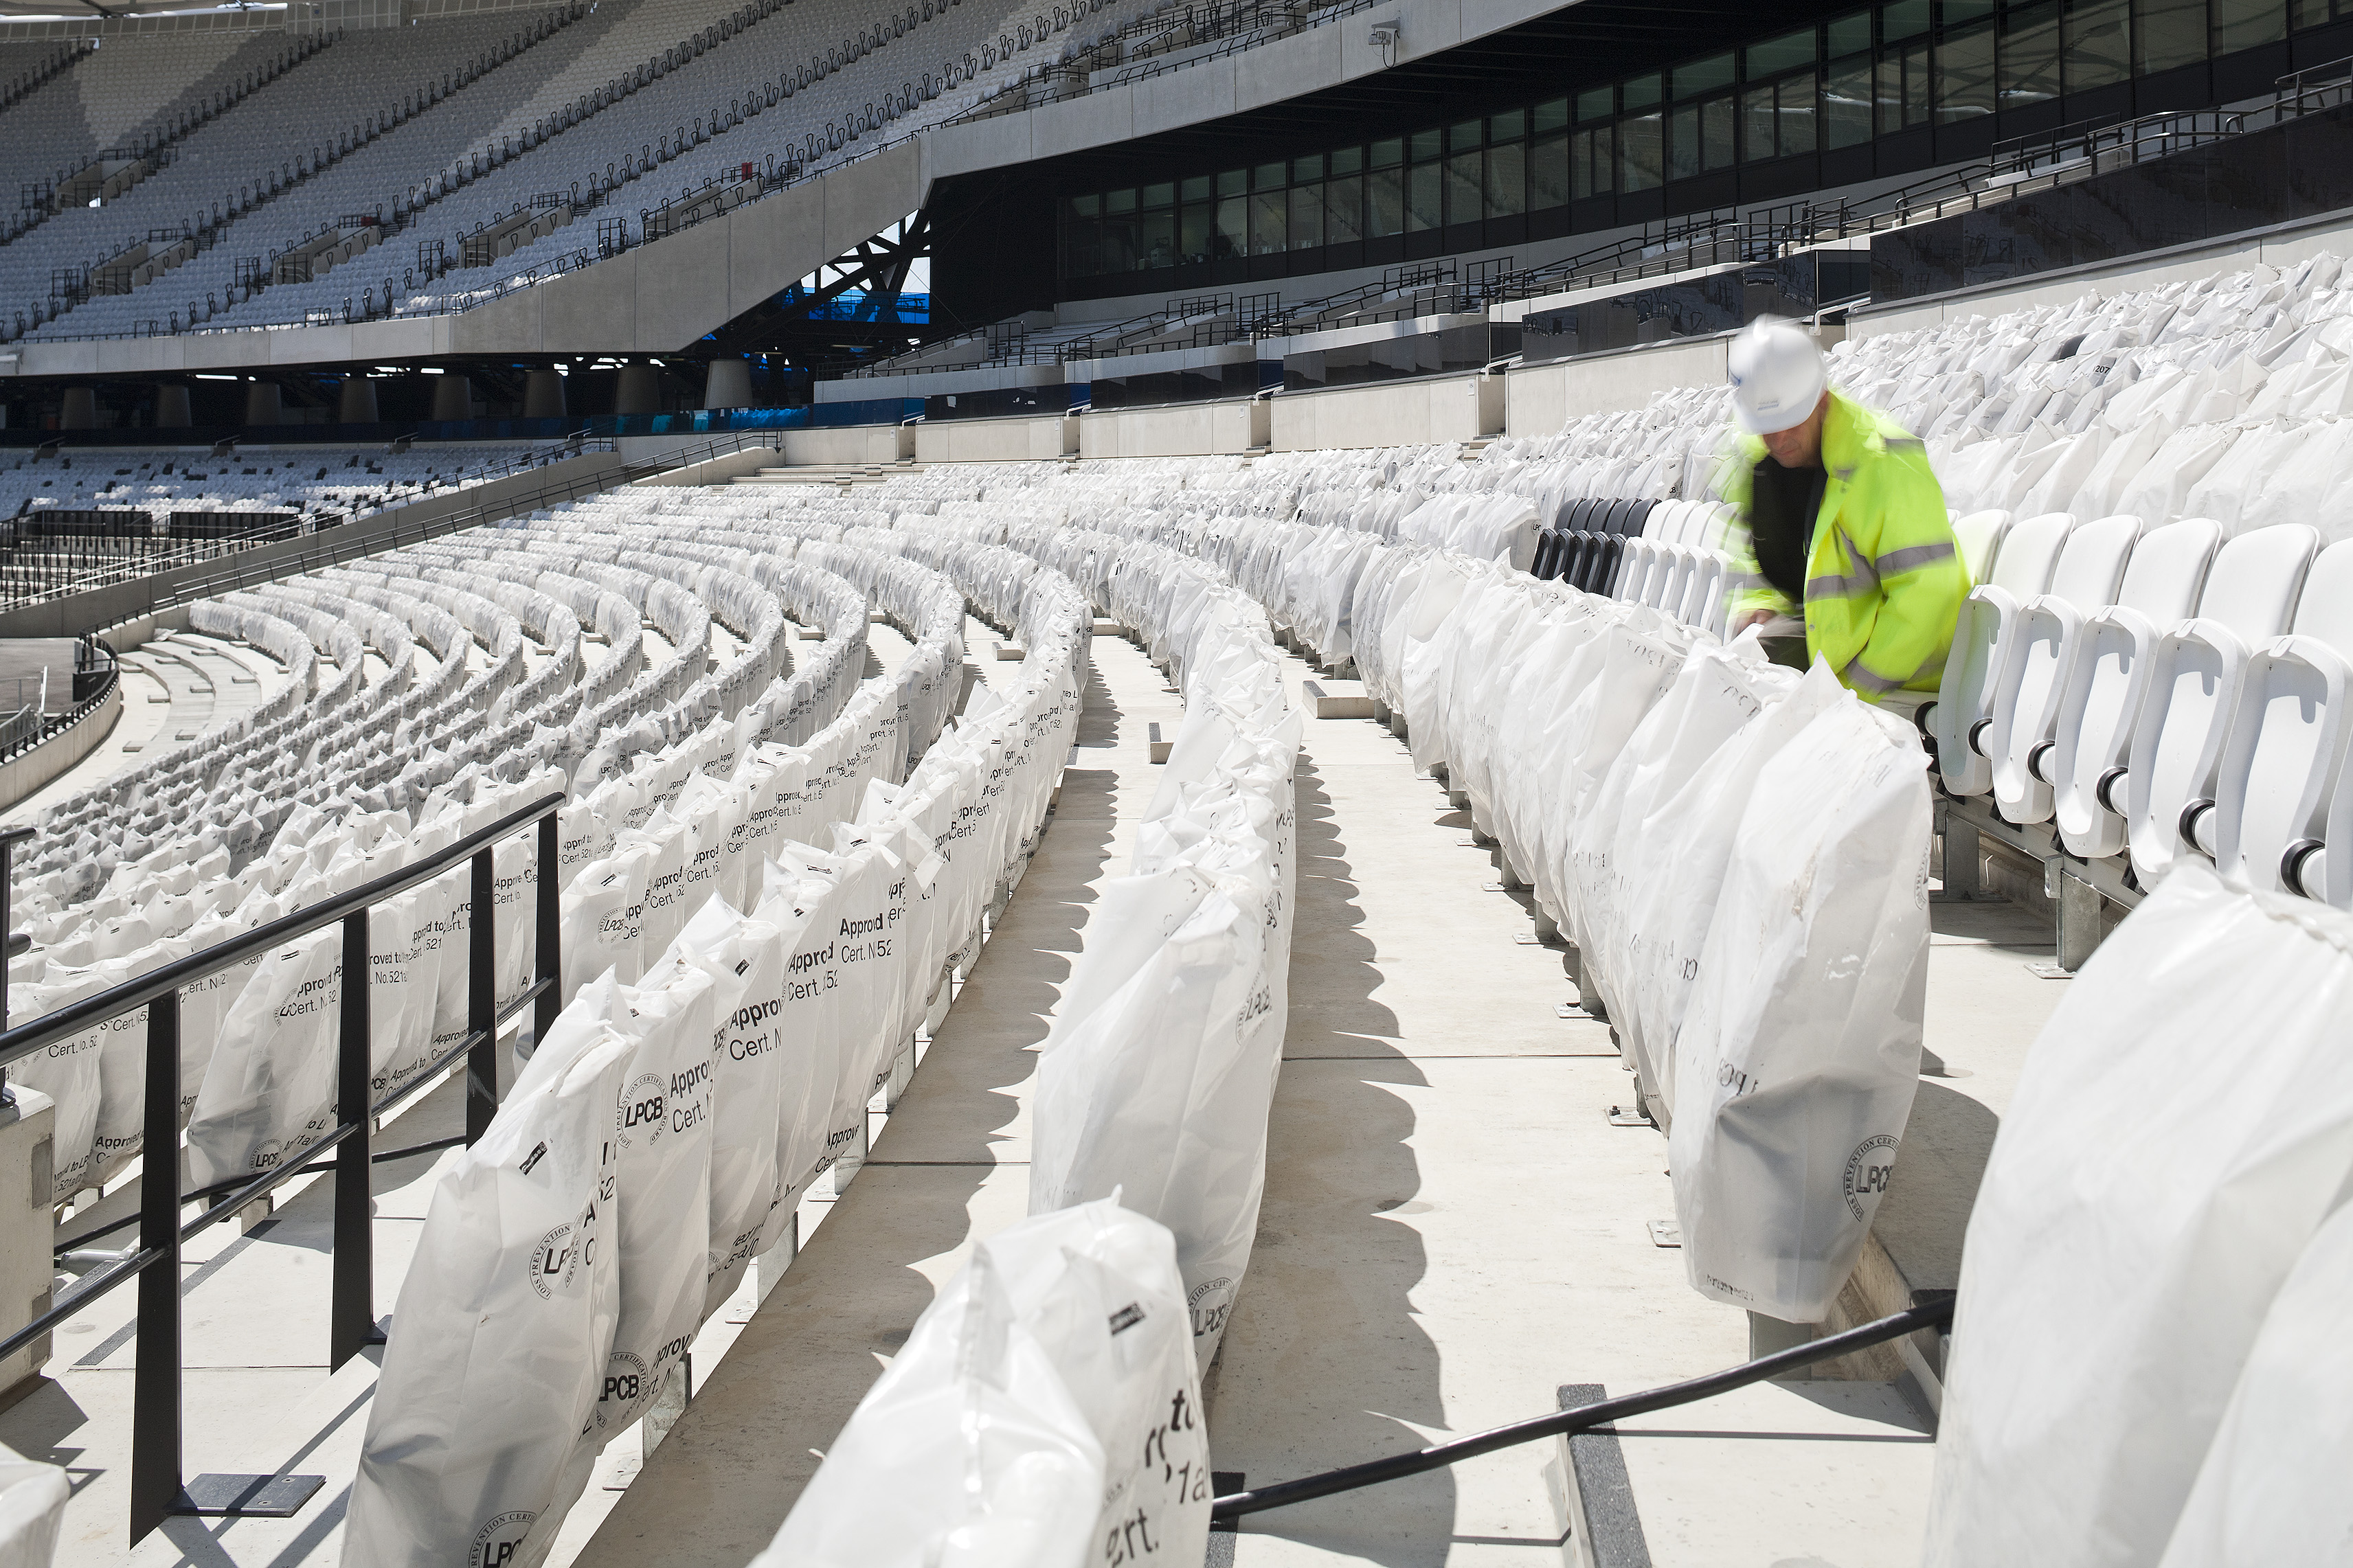 Every Seat in the Stadium